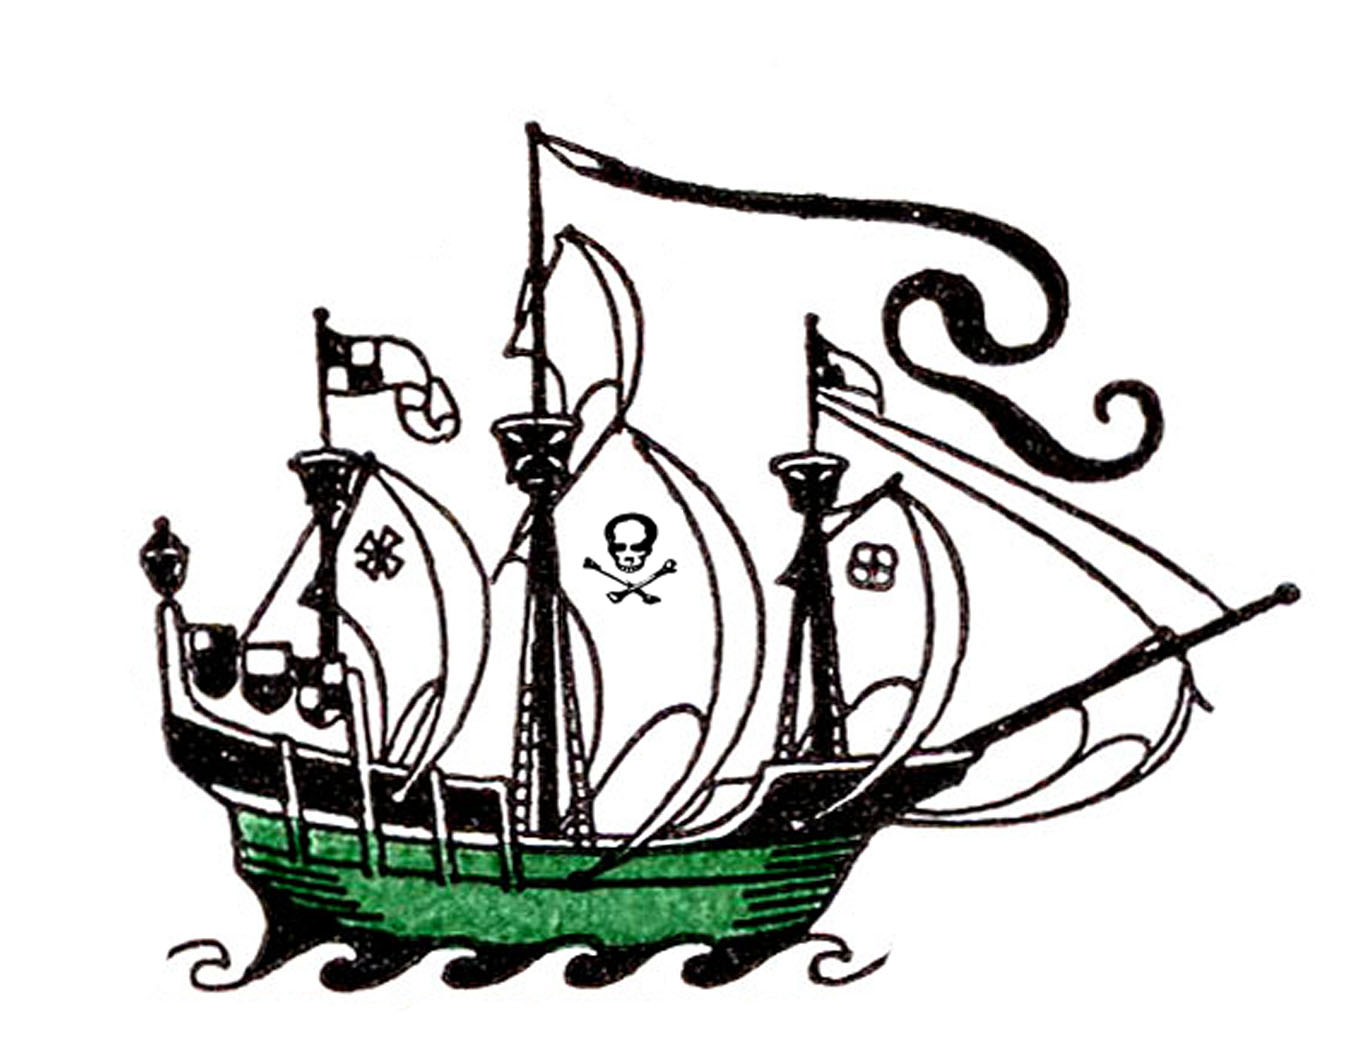 Sailing Ship clipart pirate the caribbean About Pinterest drawings on Possibles